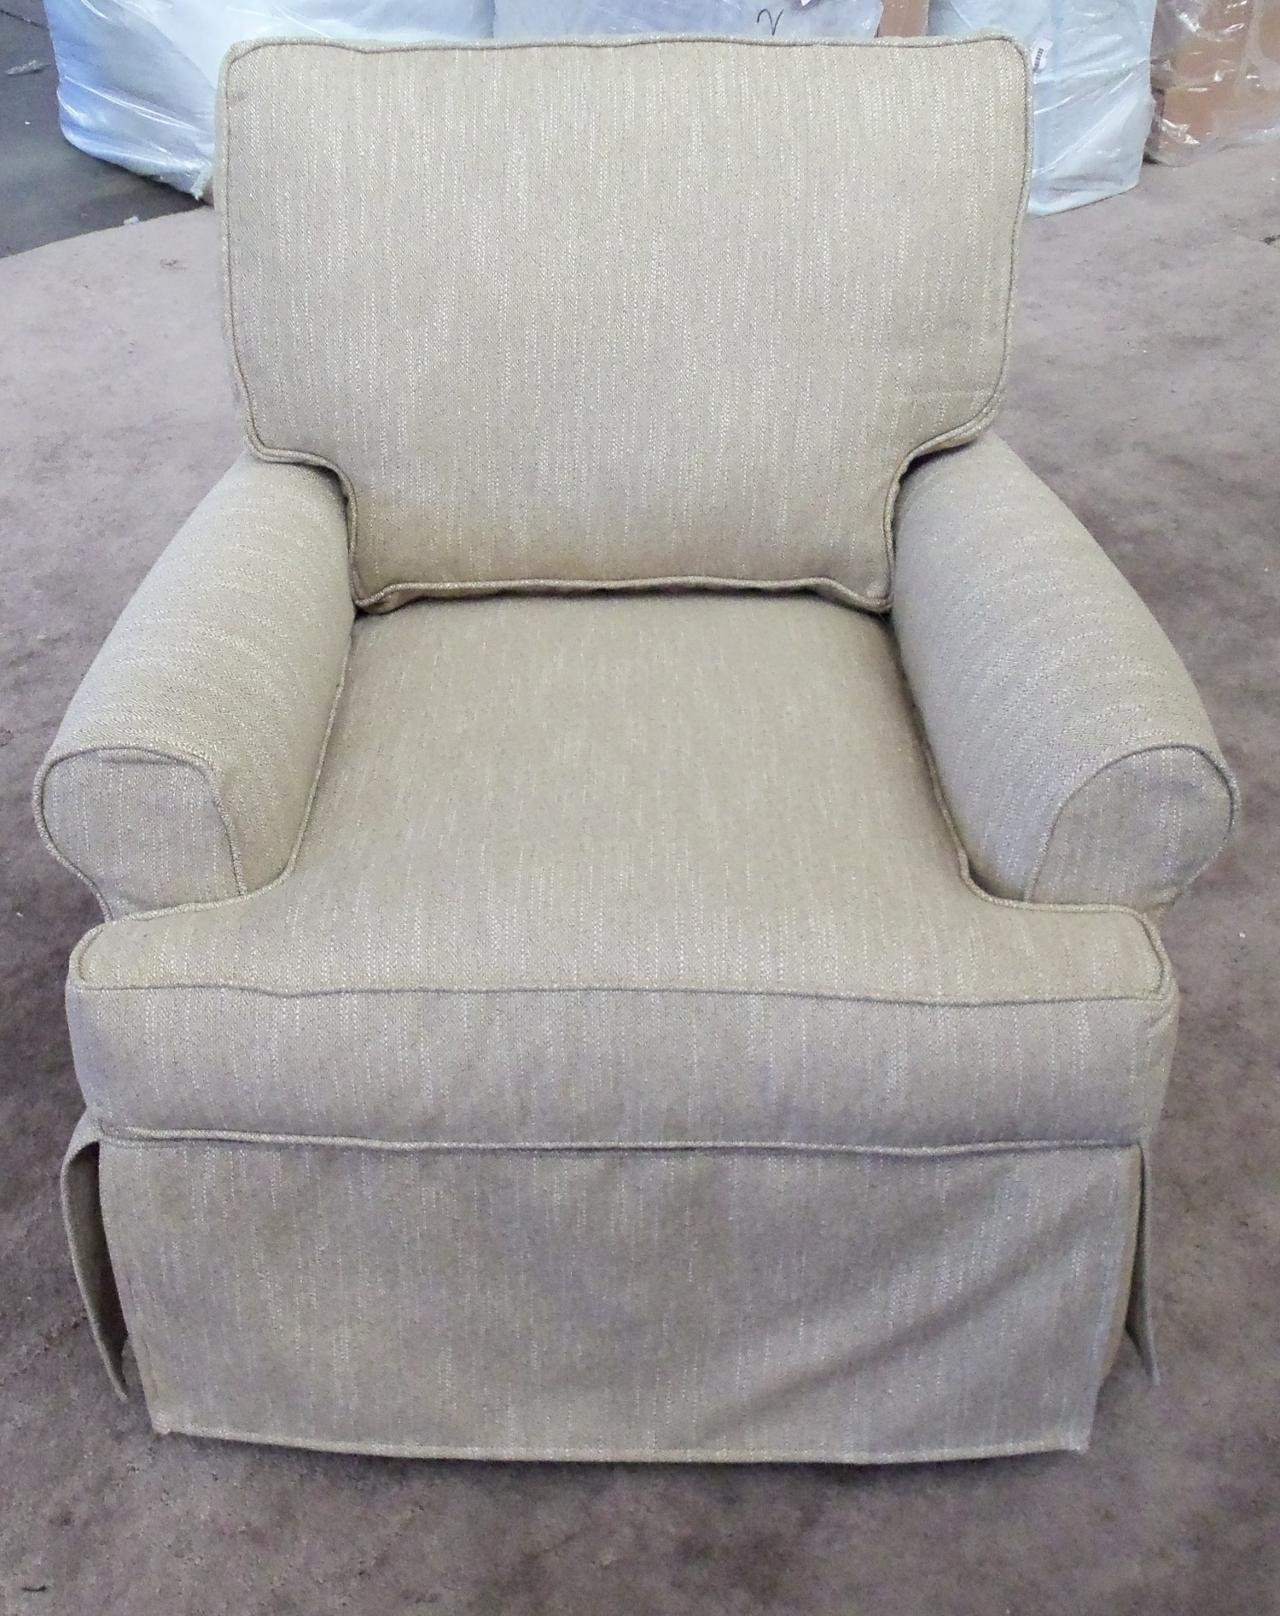 Decorating: Exciting White Rowe Furniture Slipcovers With Regarding Rowe Slipcovers (Image 3 of 20)